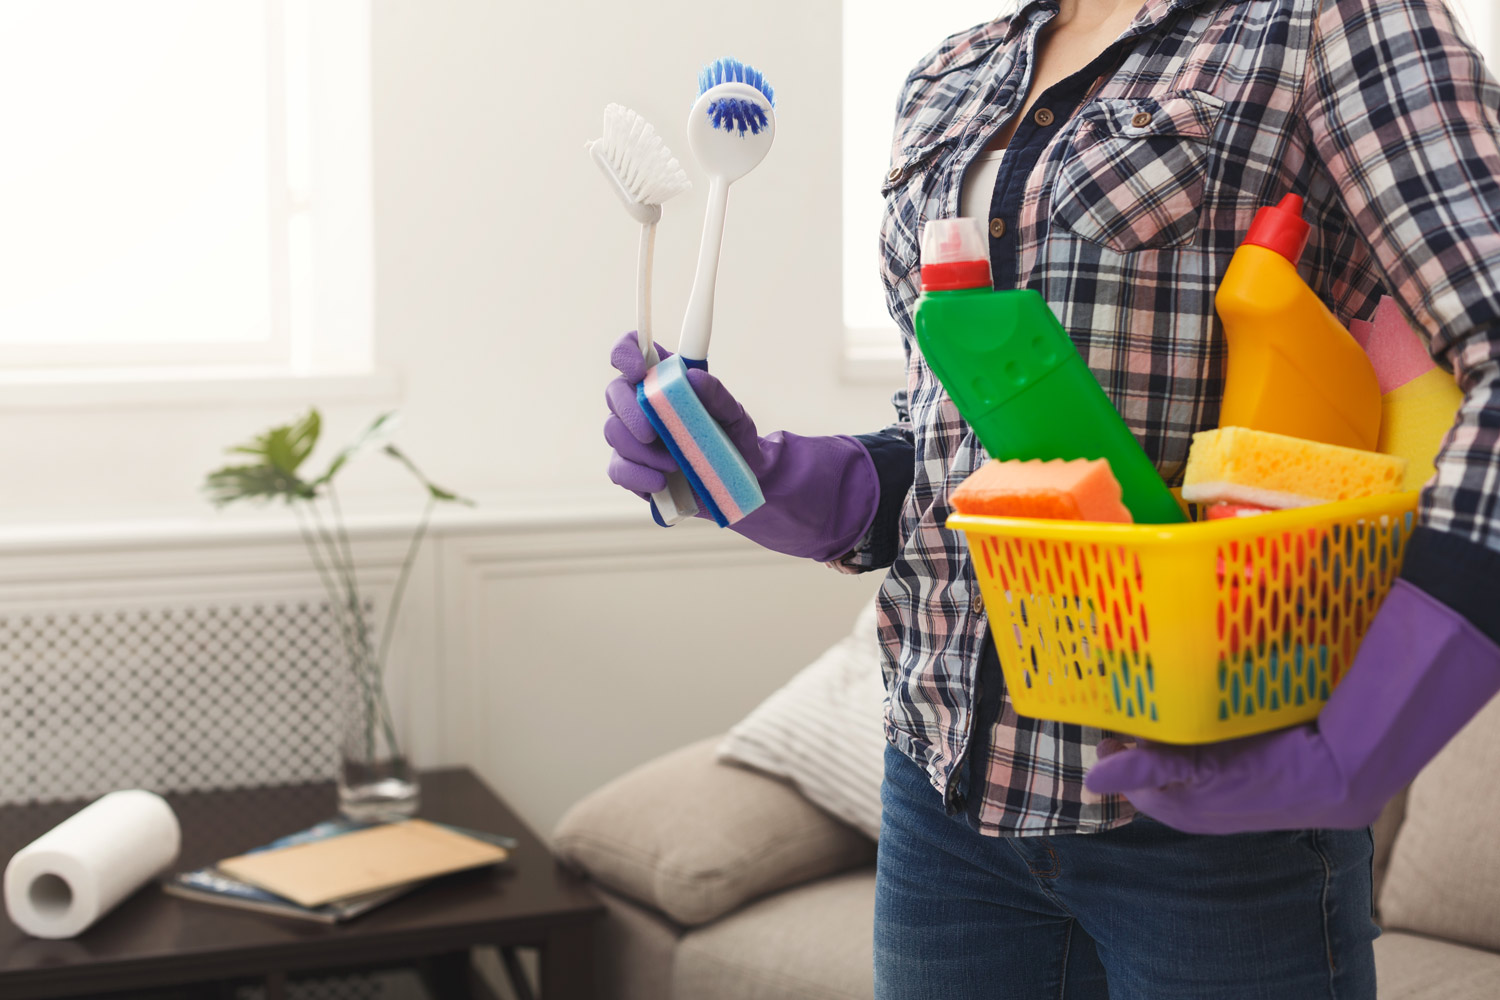 After flooding cleaning products